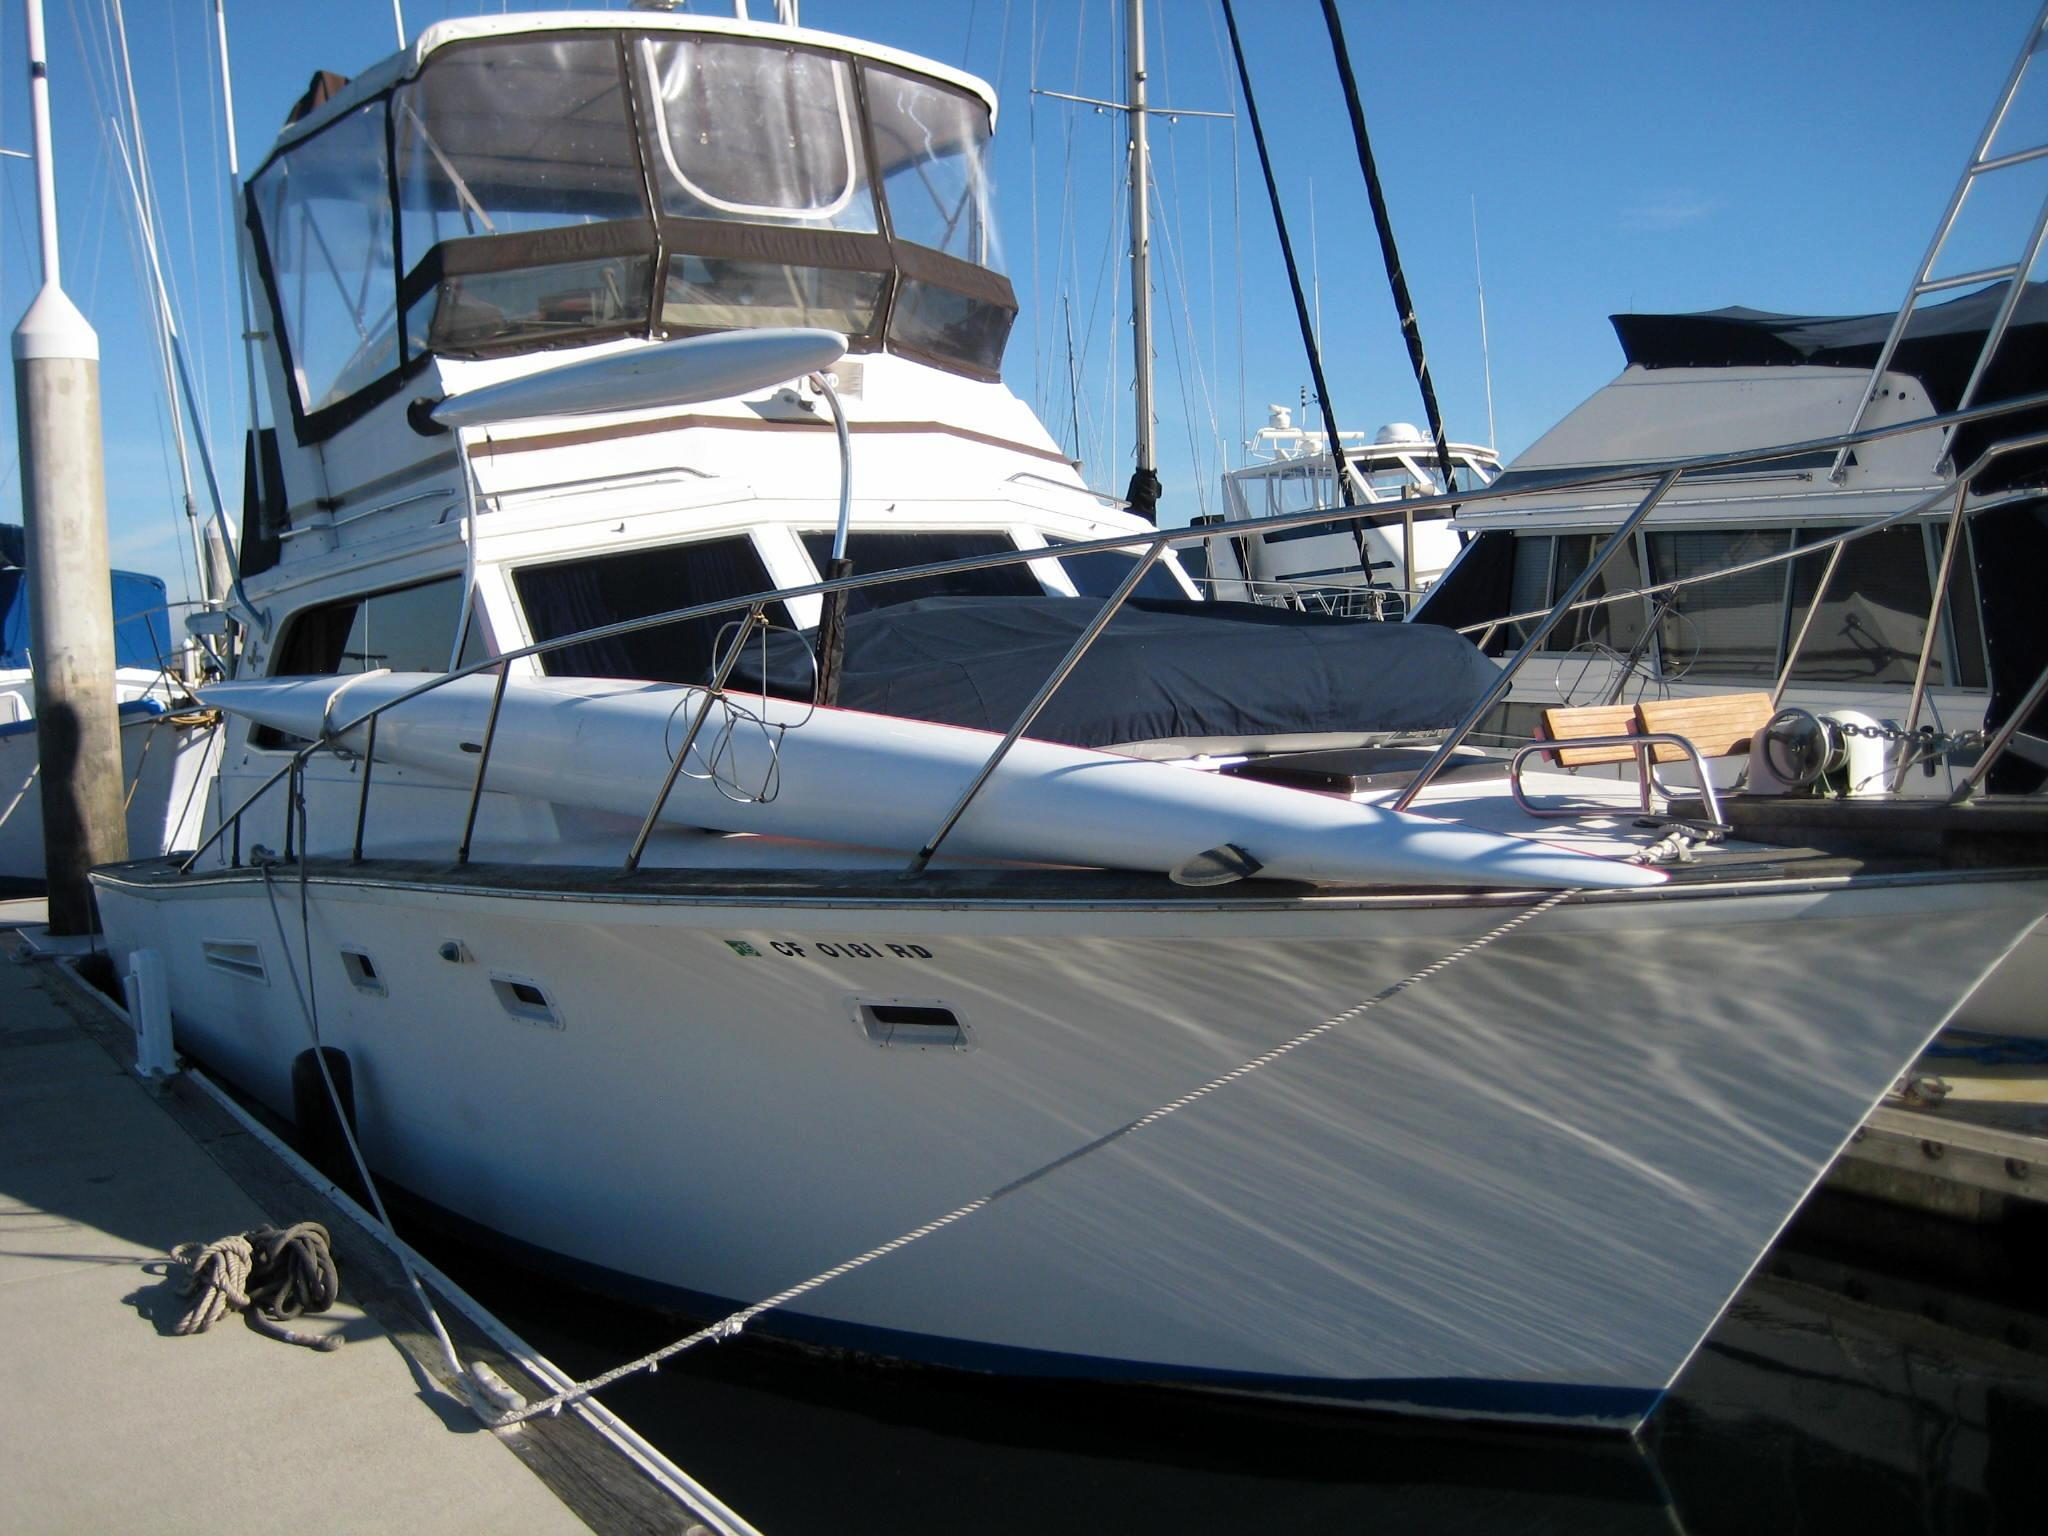 Fishing boat listings in ca for Used fishing boats for sale in california